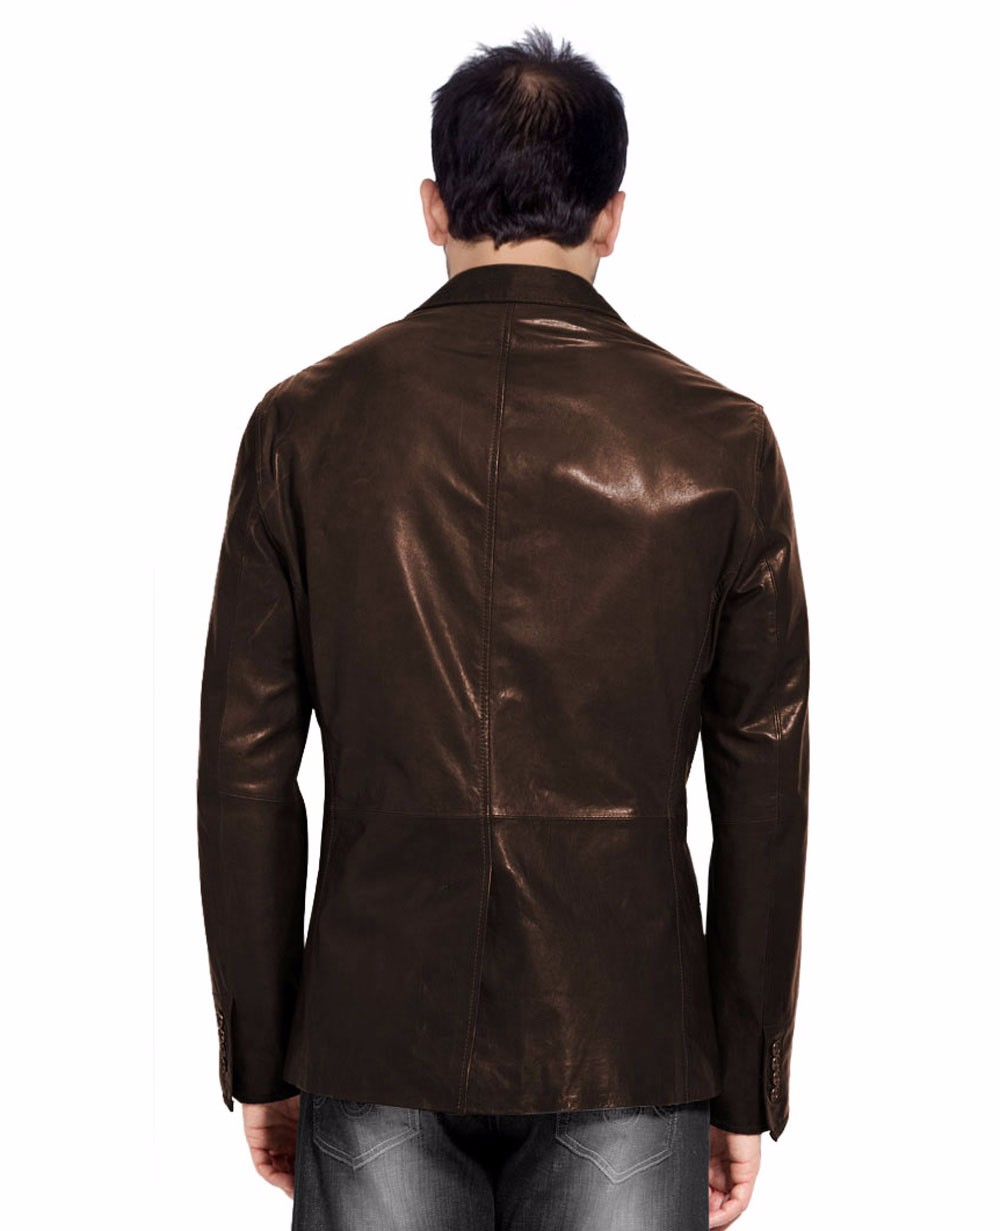 High Quality Coat Blazer Man Clothing With Factory Price Hunting Leather  Jackets , Buy Newest Style High Quality Fashion Men Leather Blazer,Mens